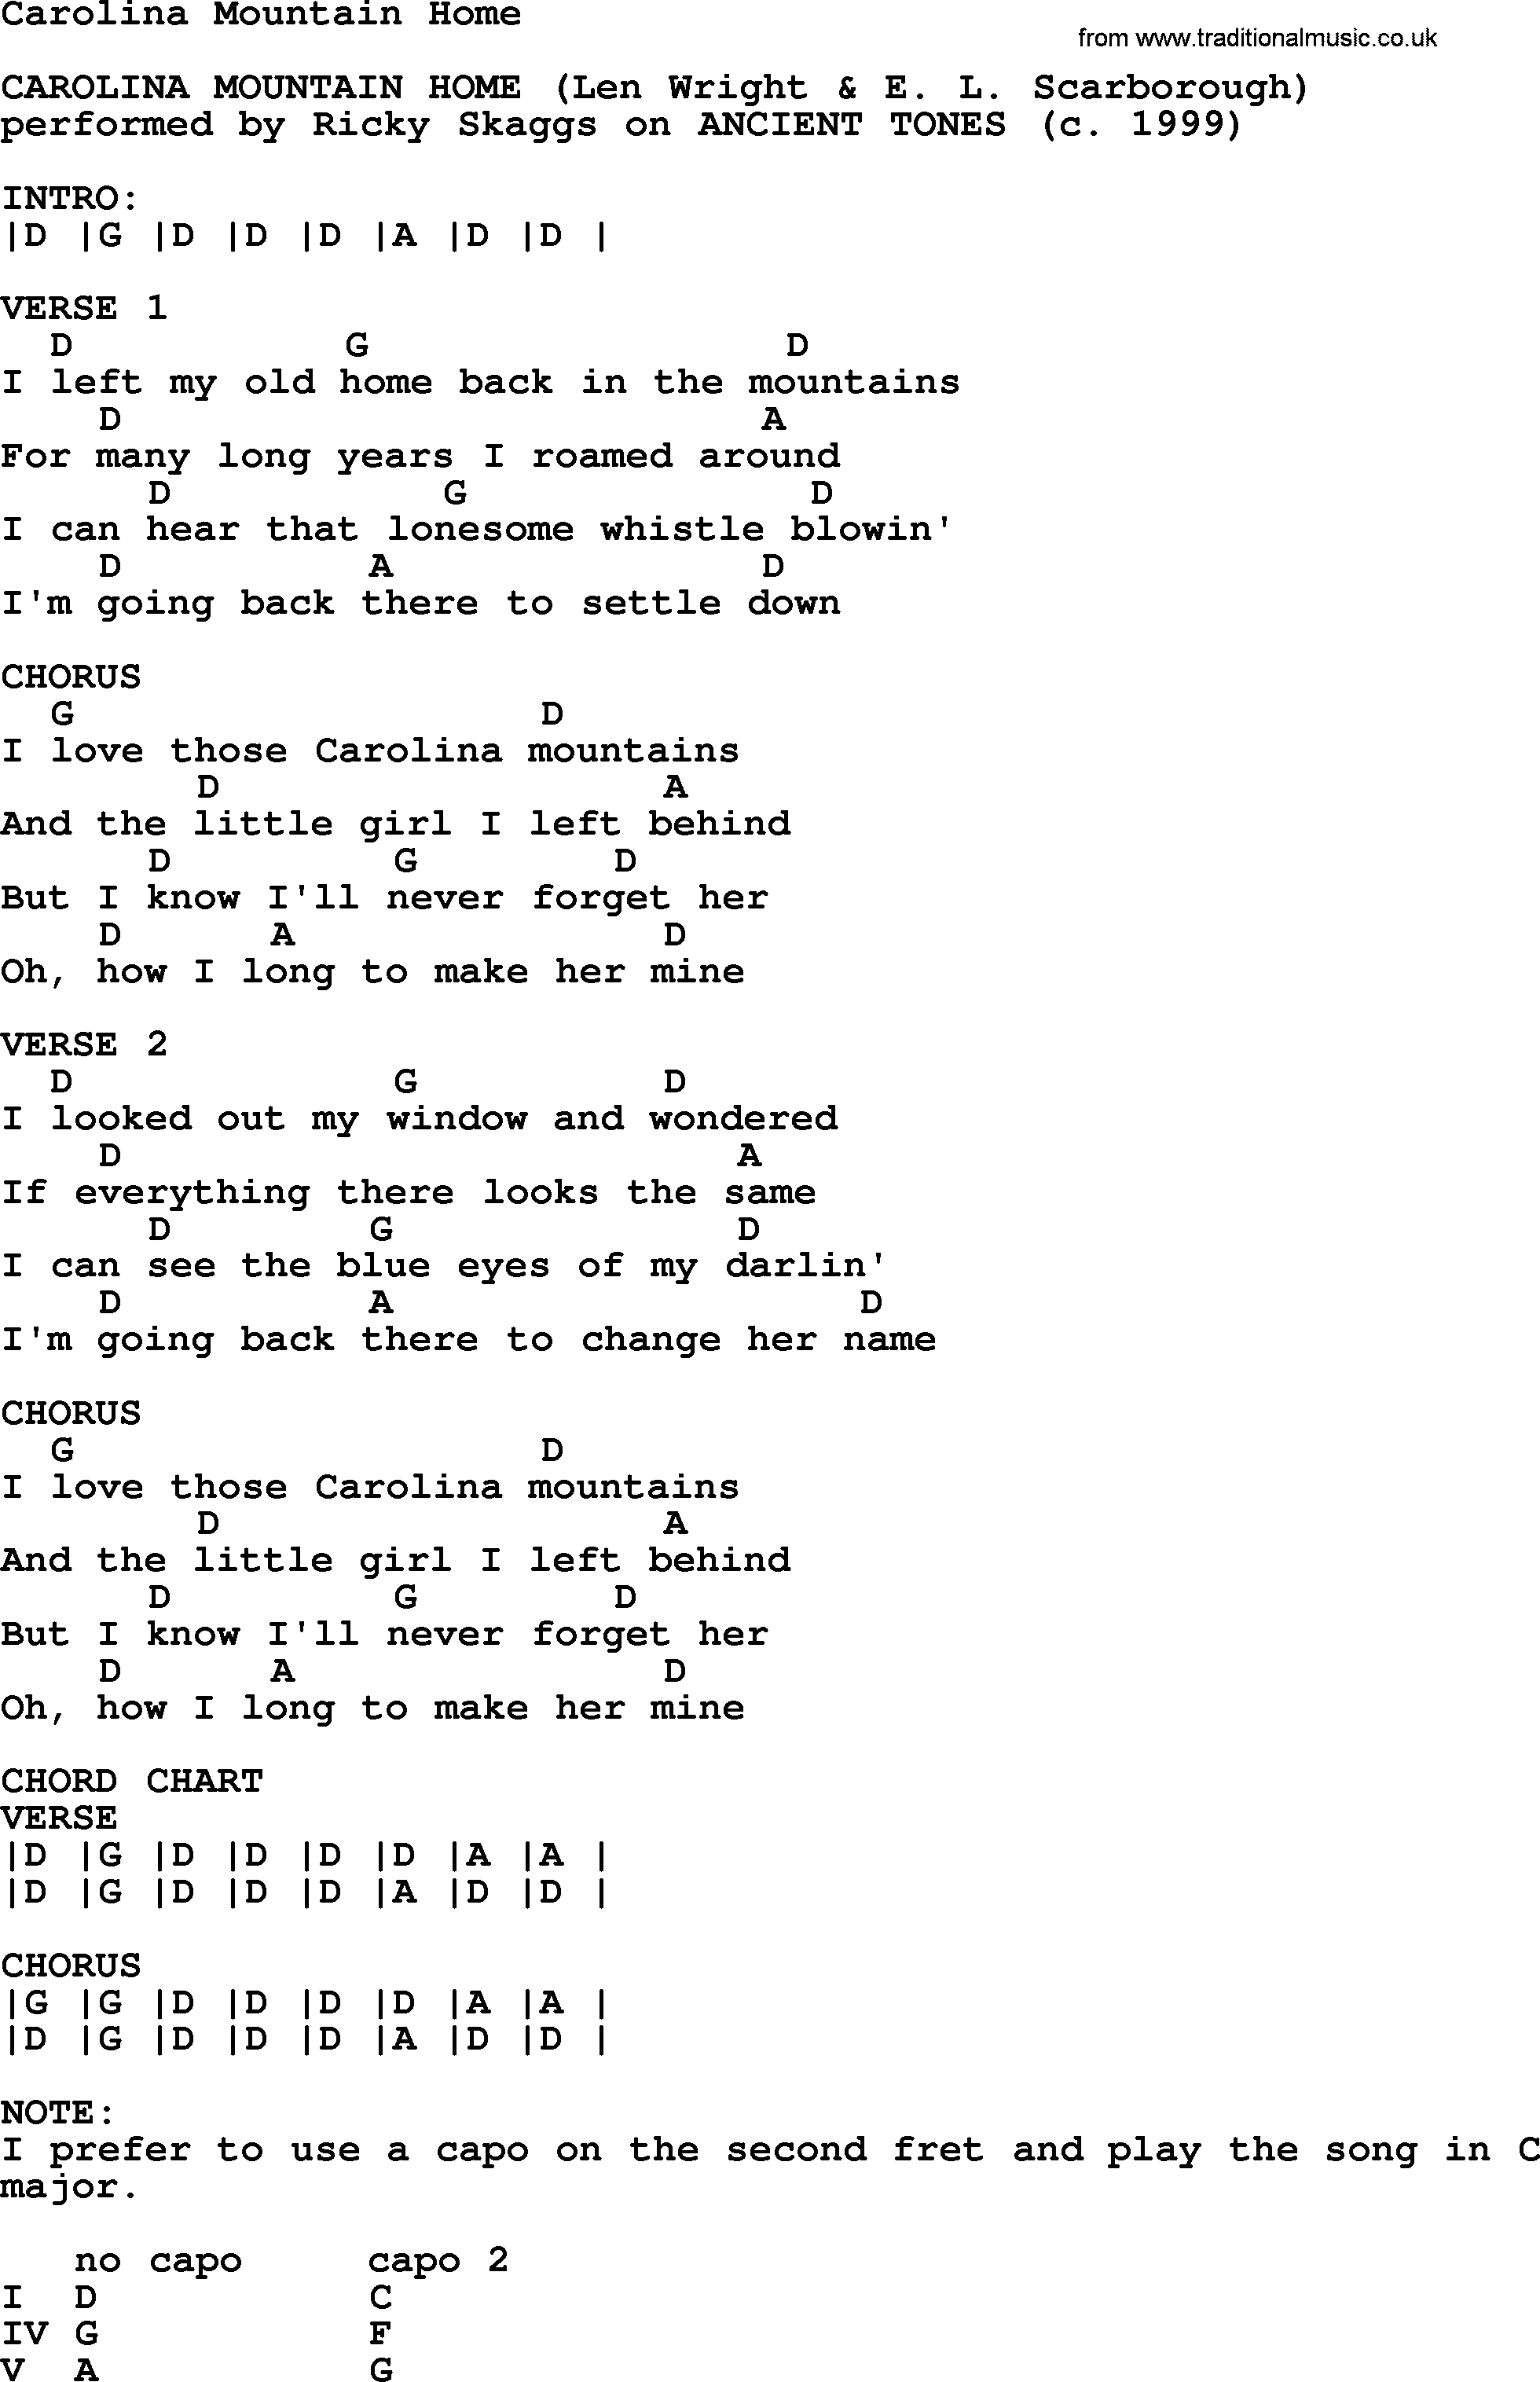 Carolina mountain home bluegrass lyrics with chords bluegrass song carolina mountain home lyrics and chords hexwebz Image collections